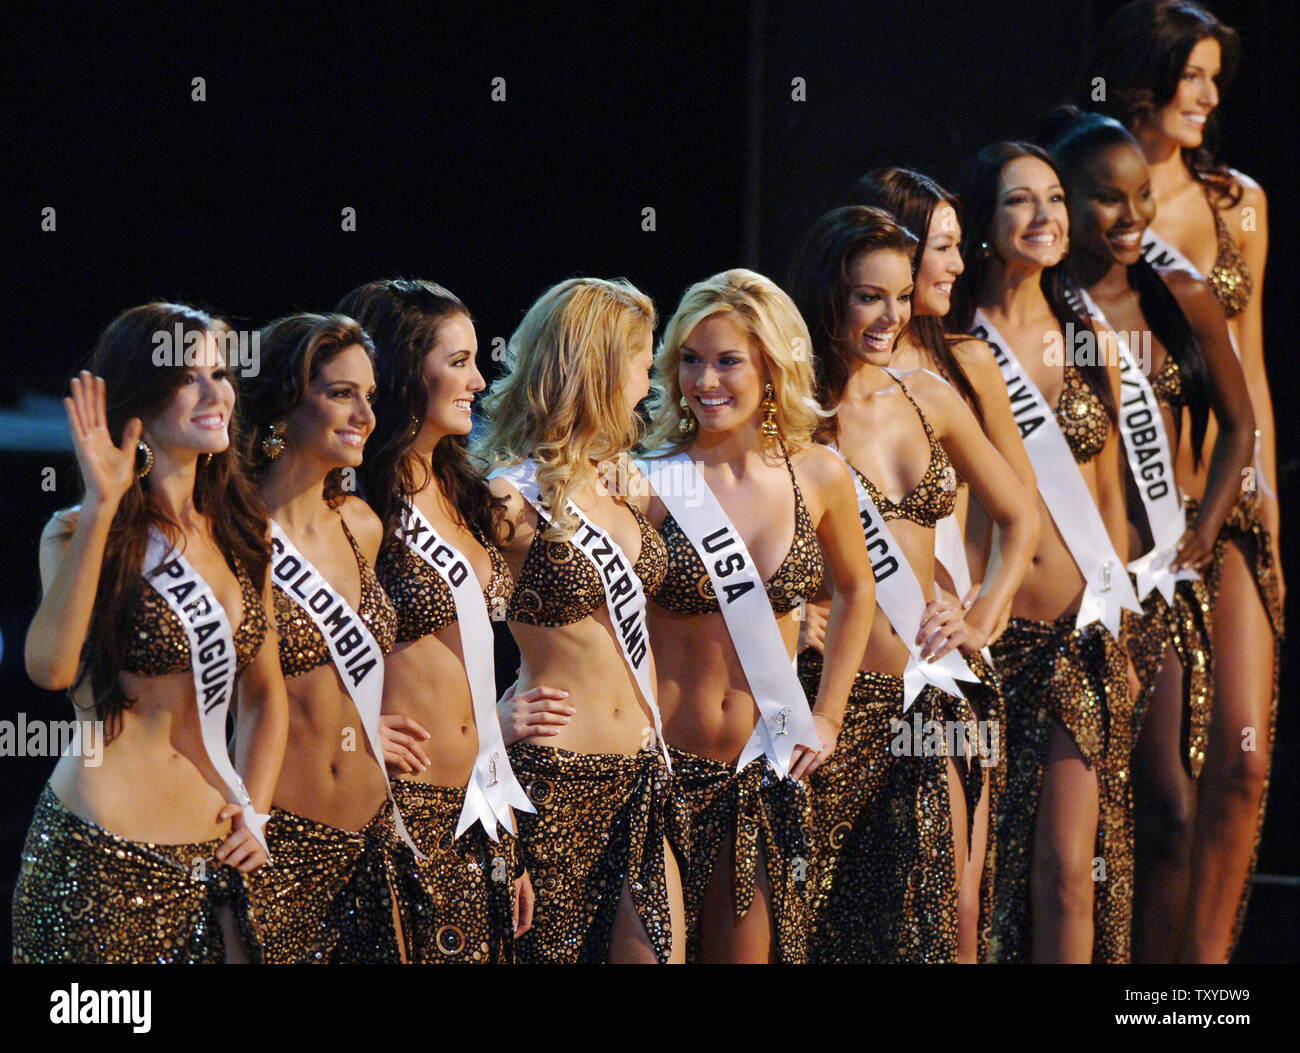 the-ten-semi-finalists-in-the-miss-unive